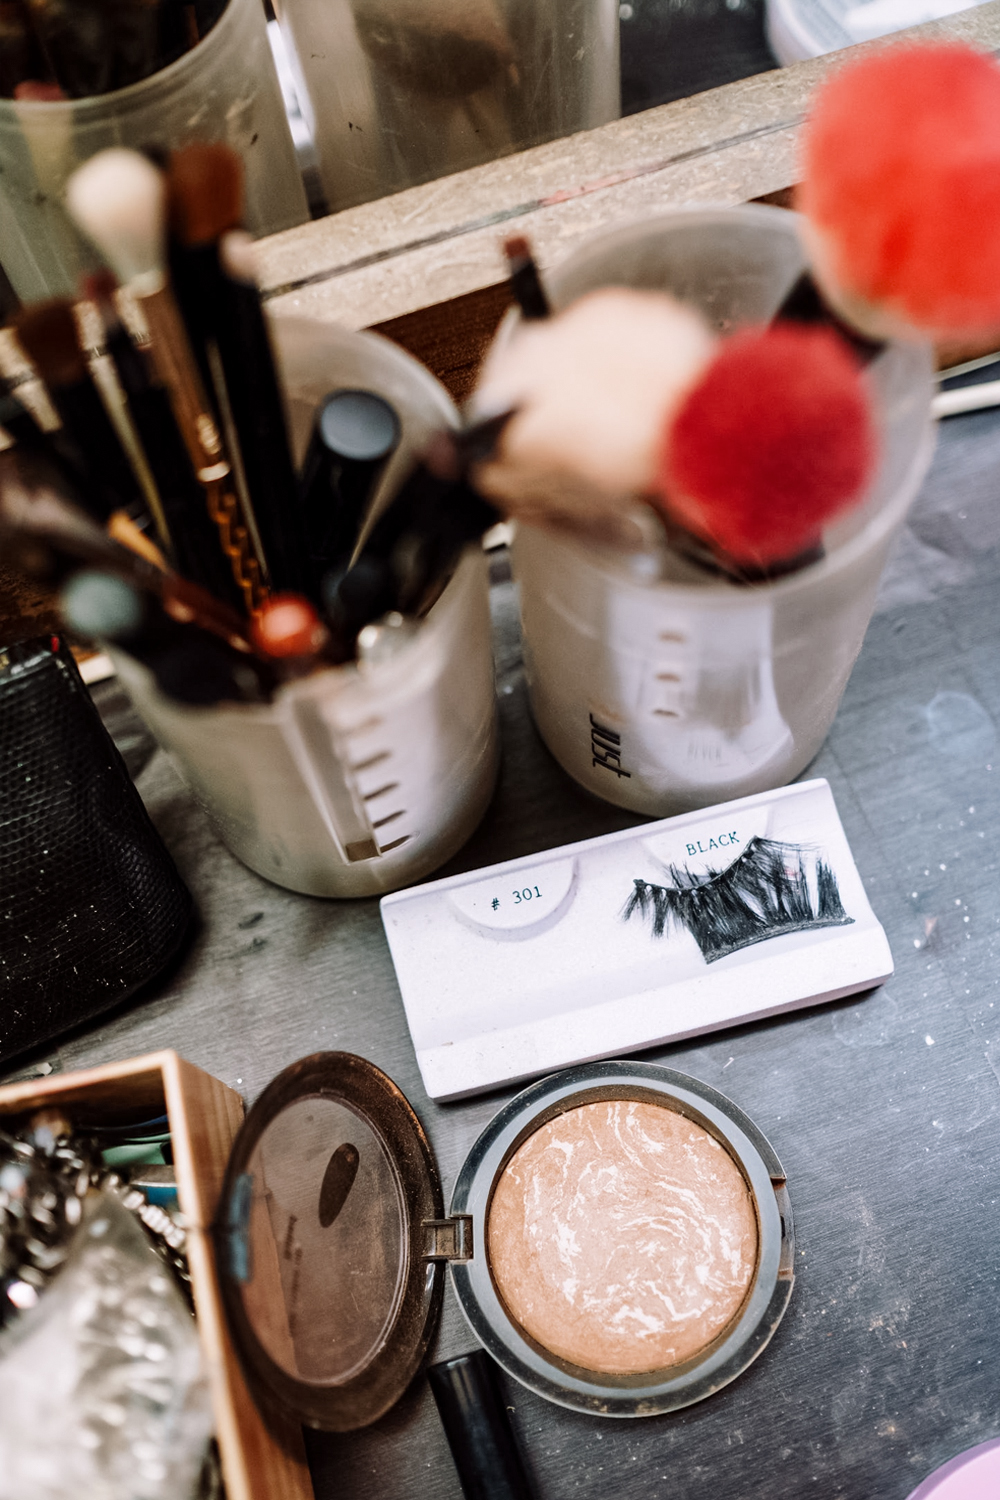 a bucnh of makeup products on the table